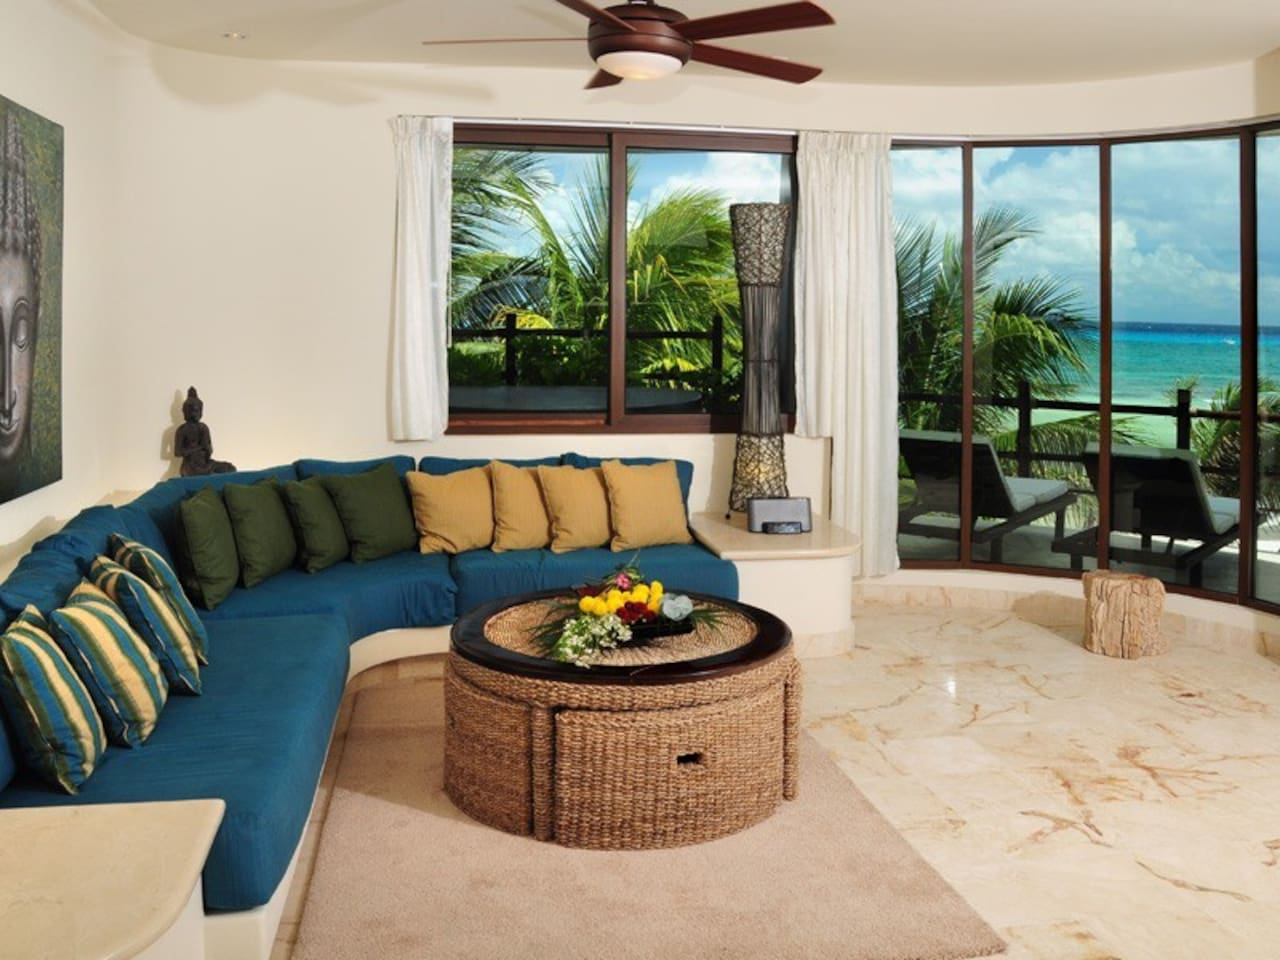 Spacious Living Room with Beautiful Partial Ocean Views